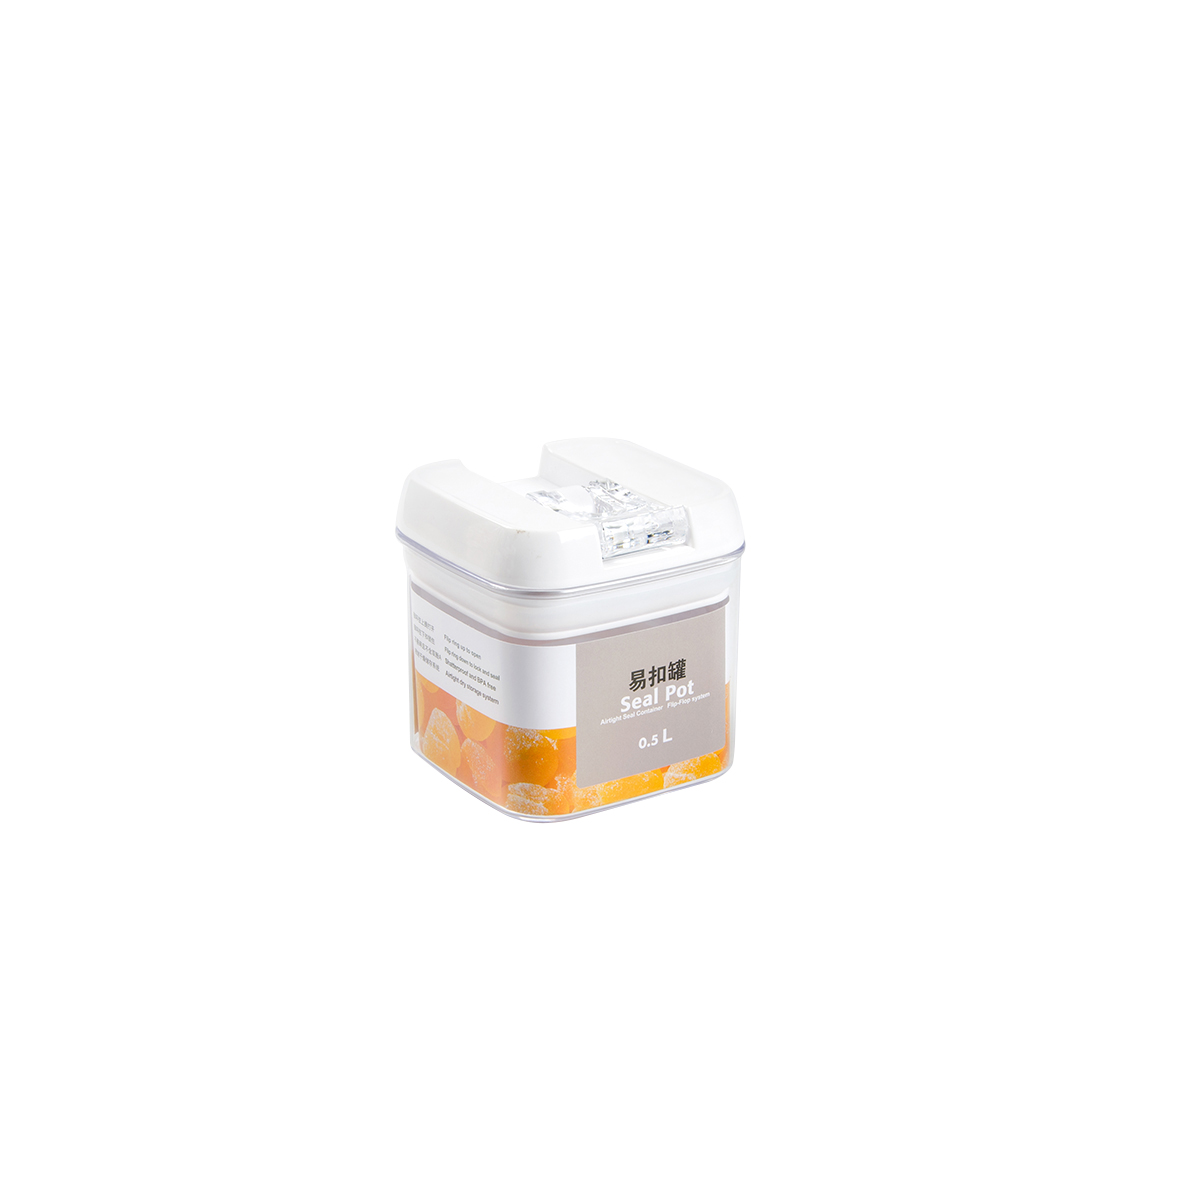 PS 1L Food Storage Container with New Lids